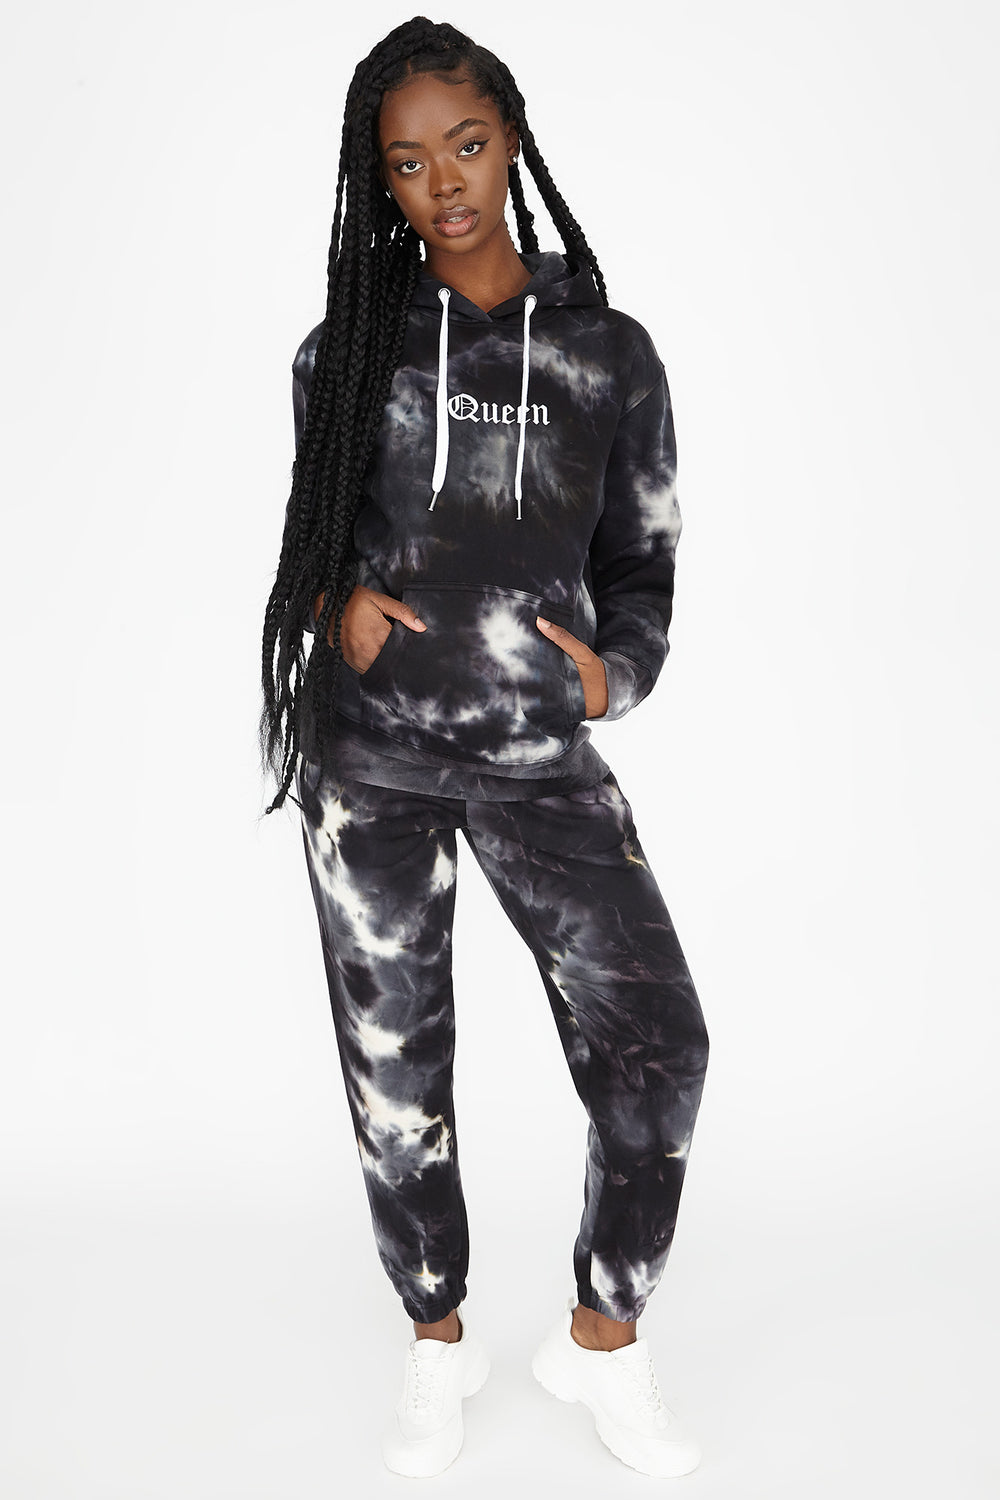 Fleece Tie Dye Graphic Queen Boyfriend Jogger Black with White